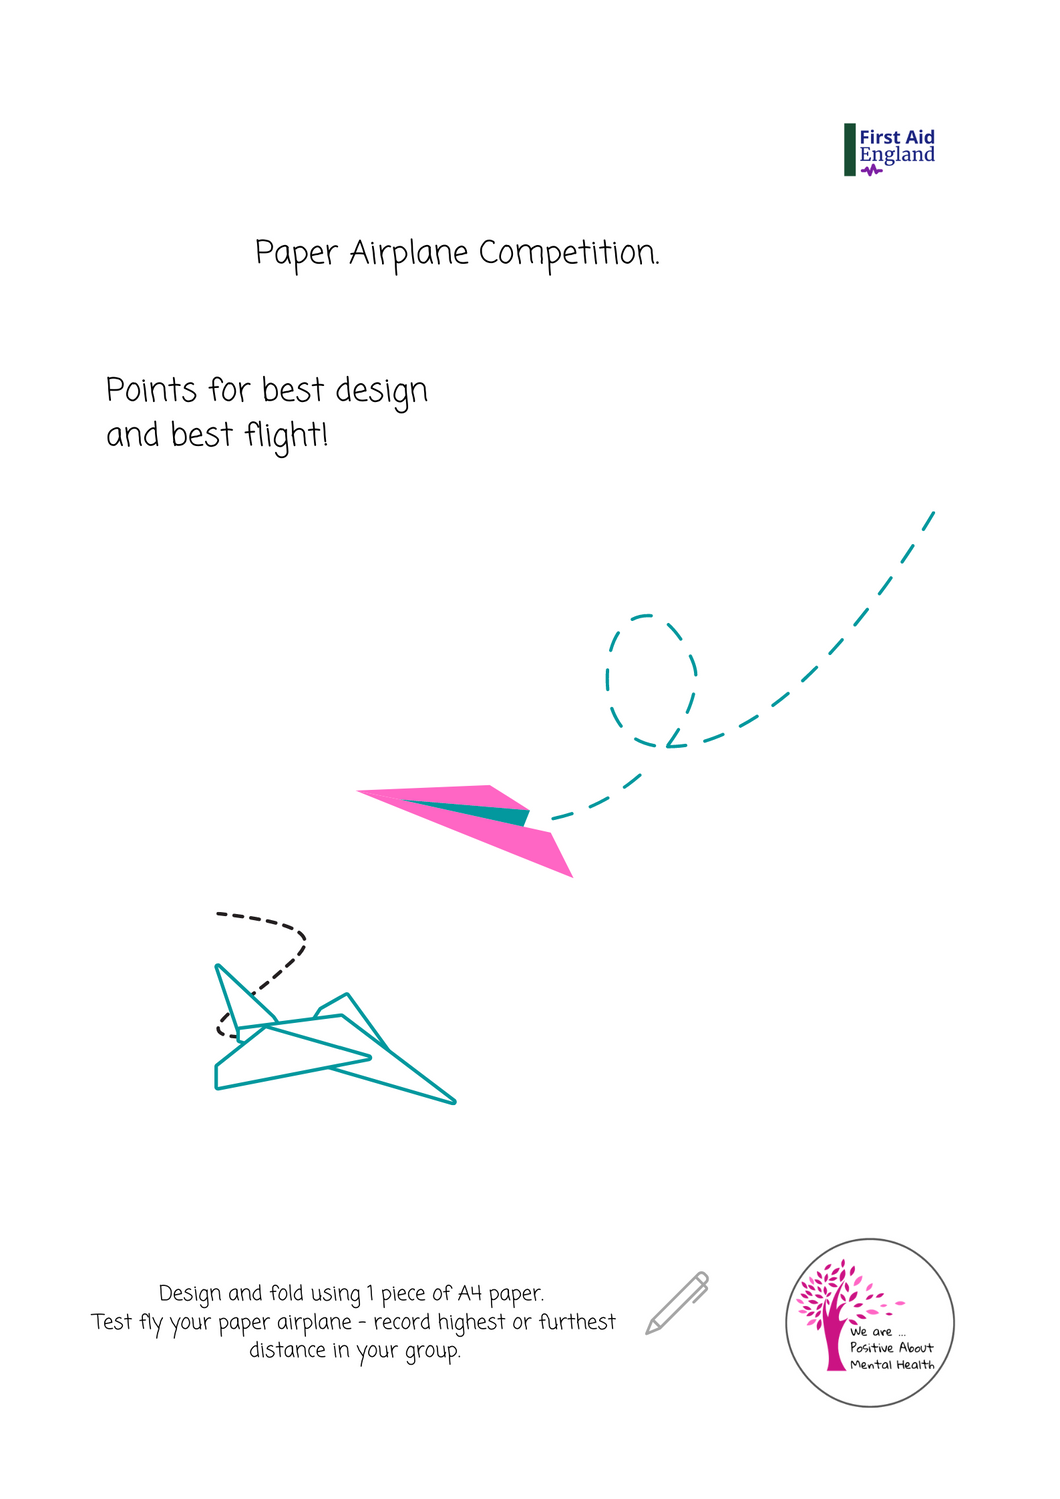 Mental Health Paper Airplane Competition E-Download